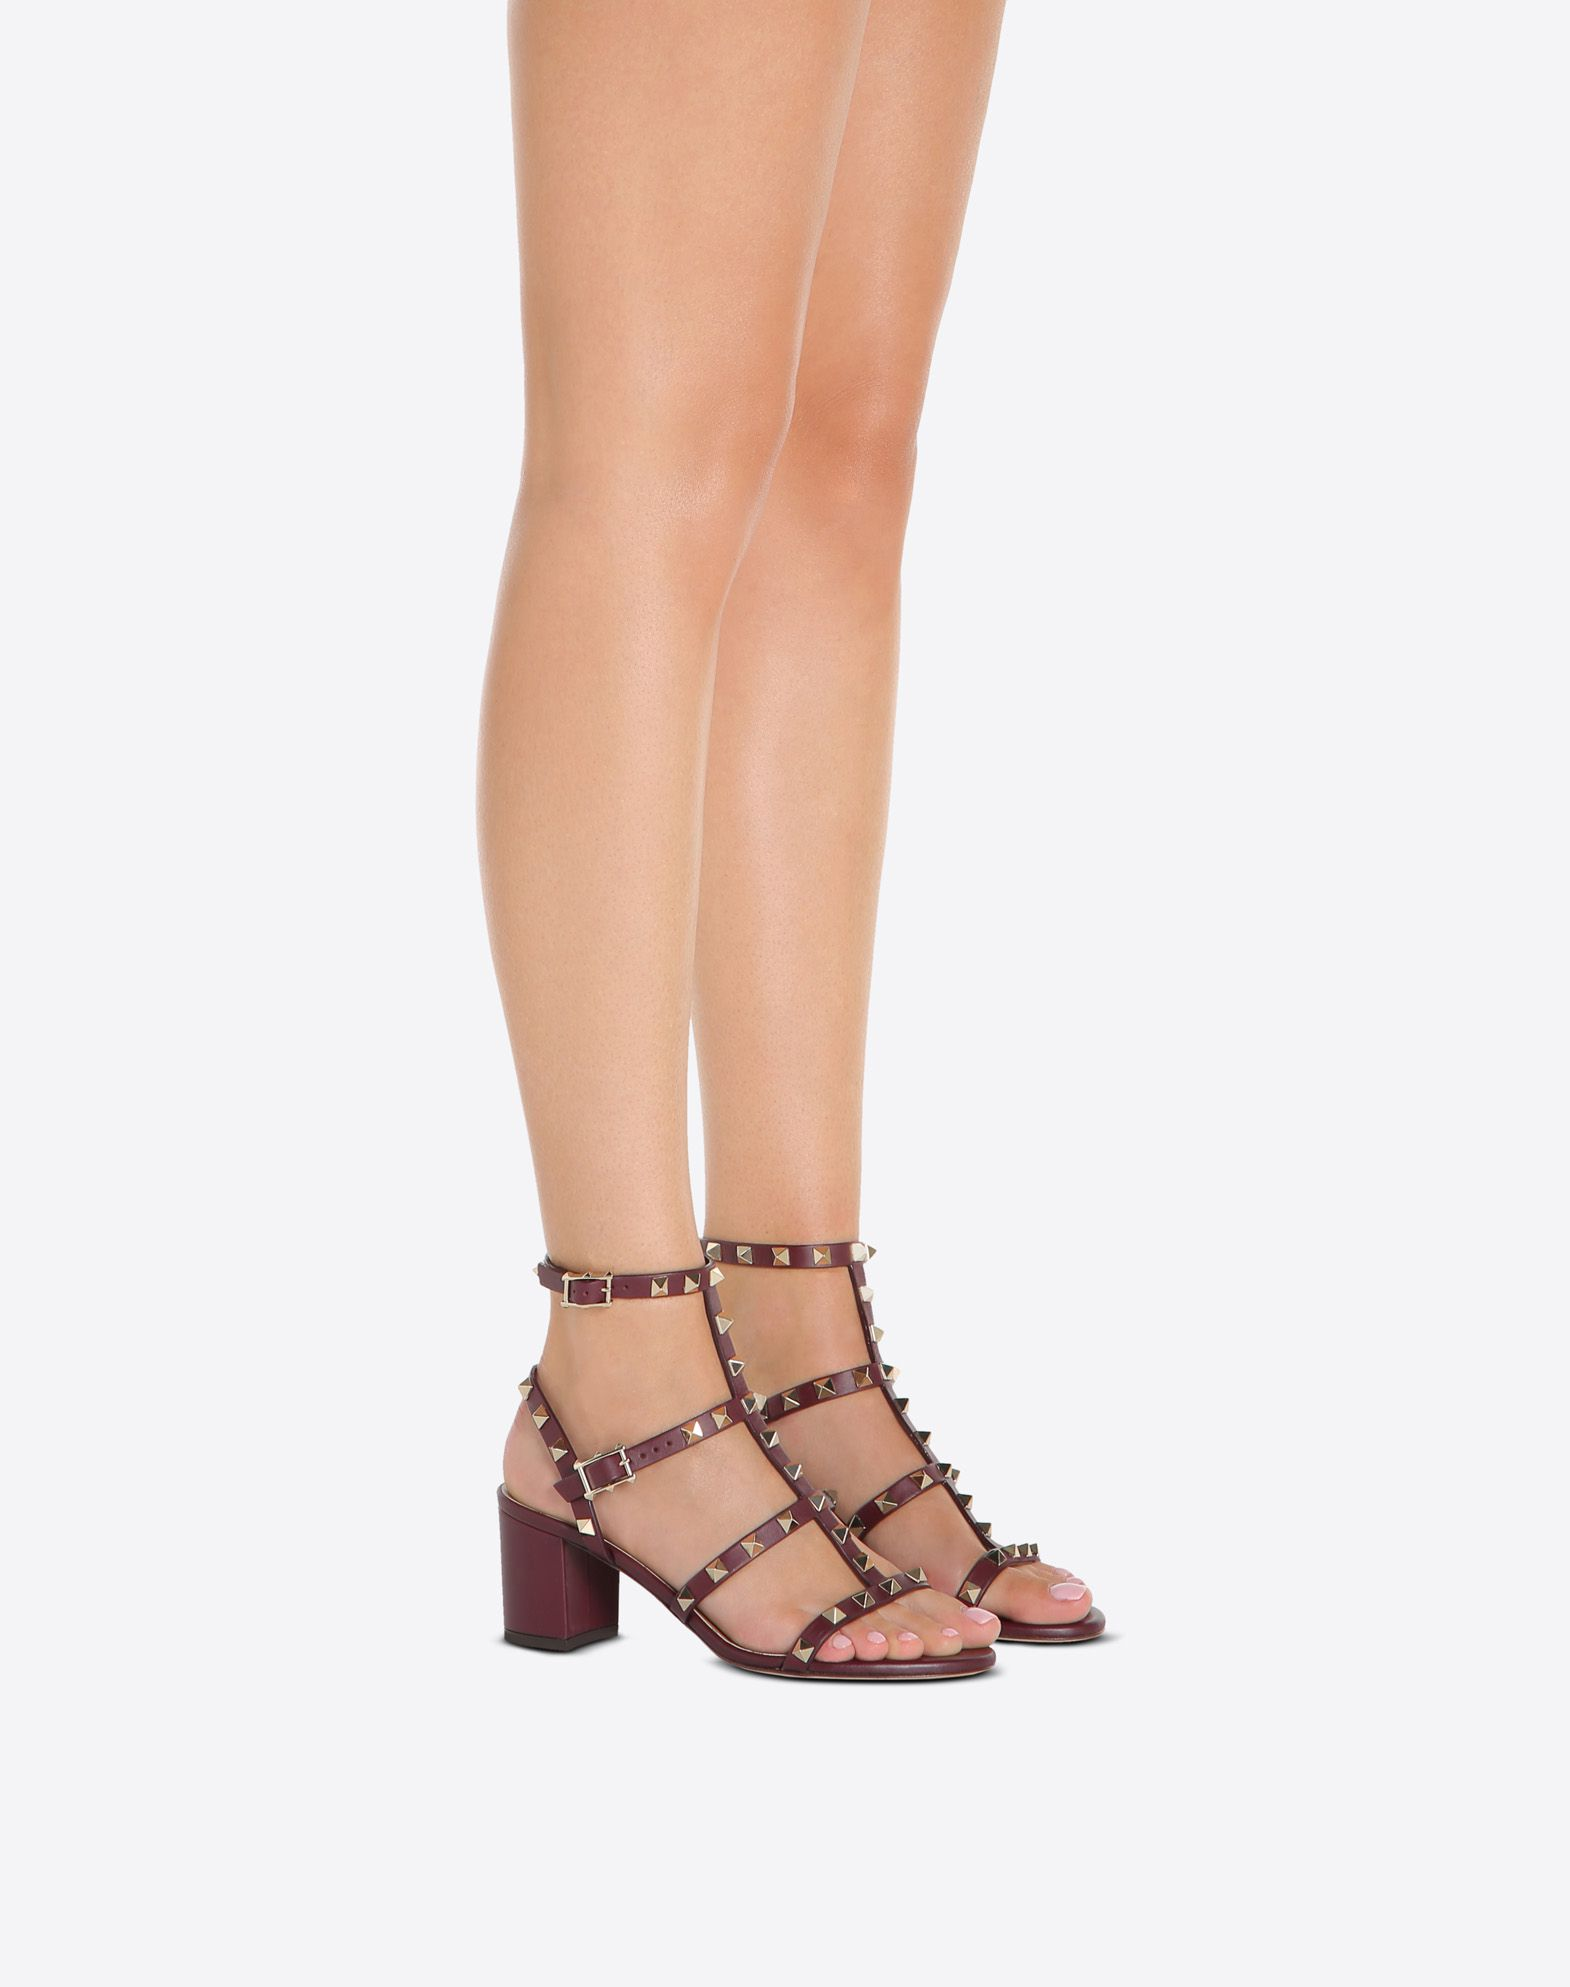 VALENTINO Studded Round toeline Solid colour Leather sole Buckle Square heel  45388163xl